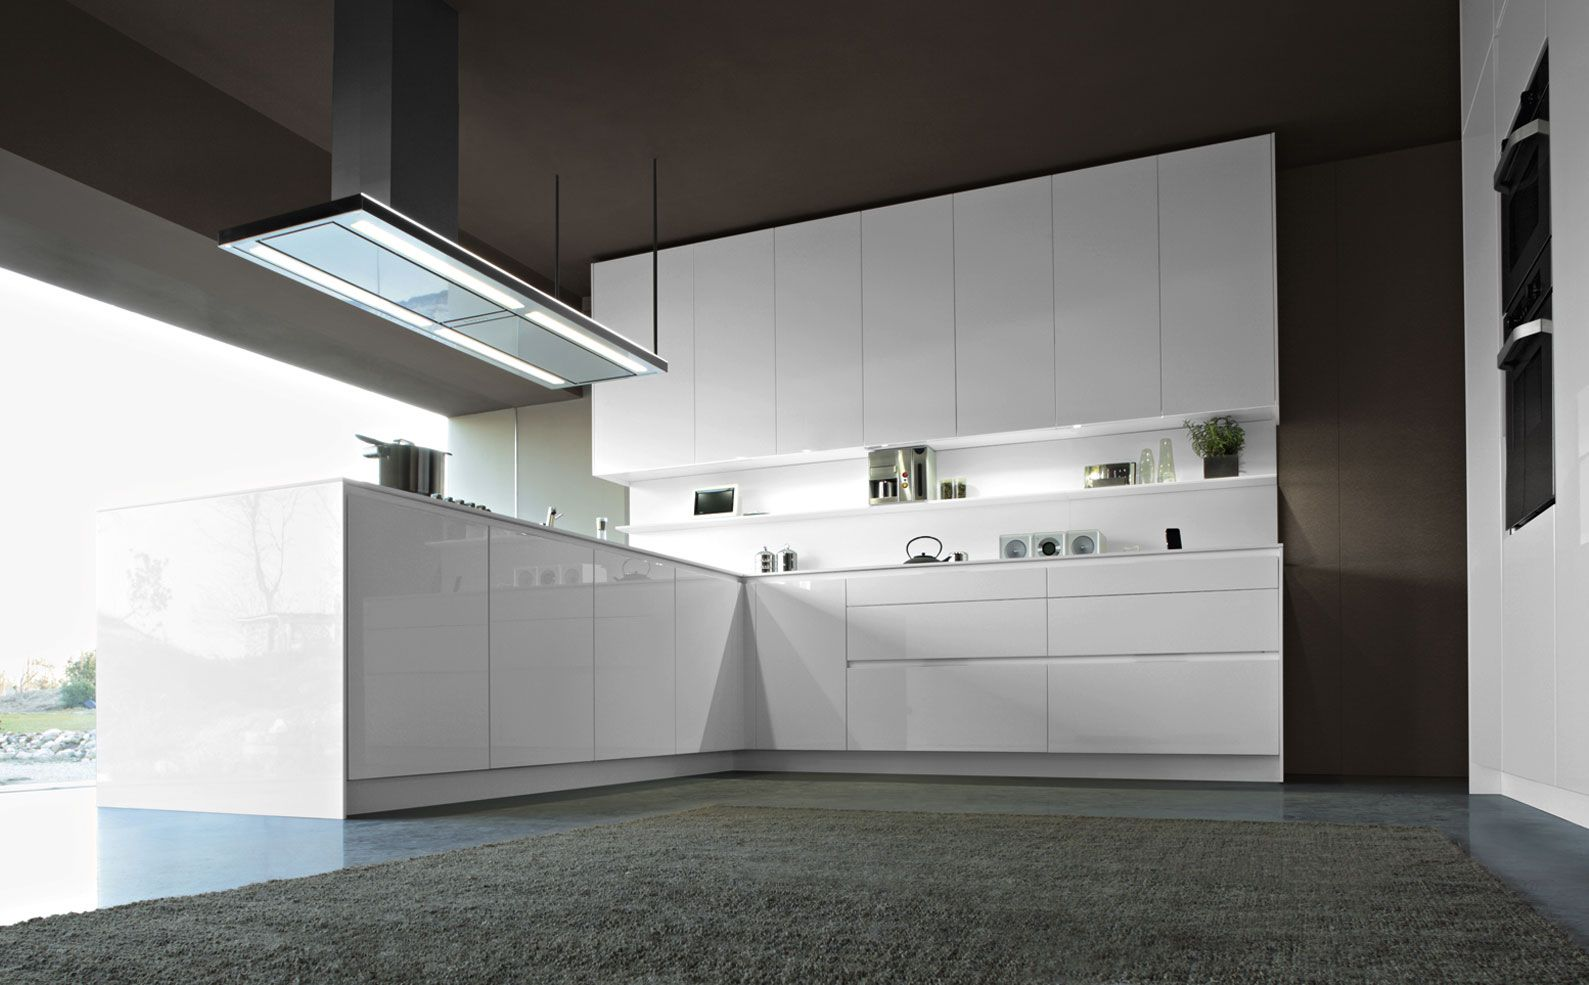 Rational küchen  Tio in artic white high gloss, another great kitchen from Rational ...